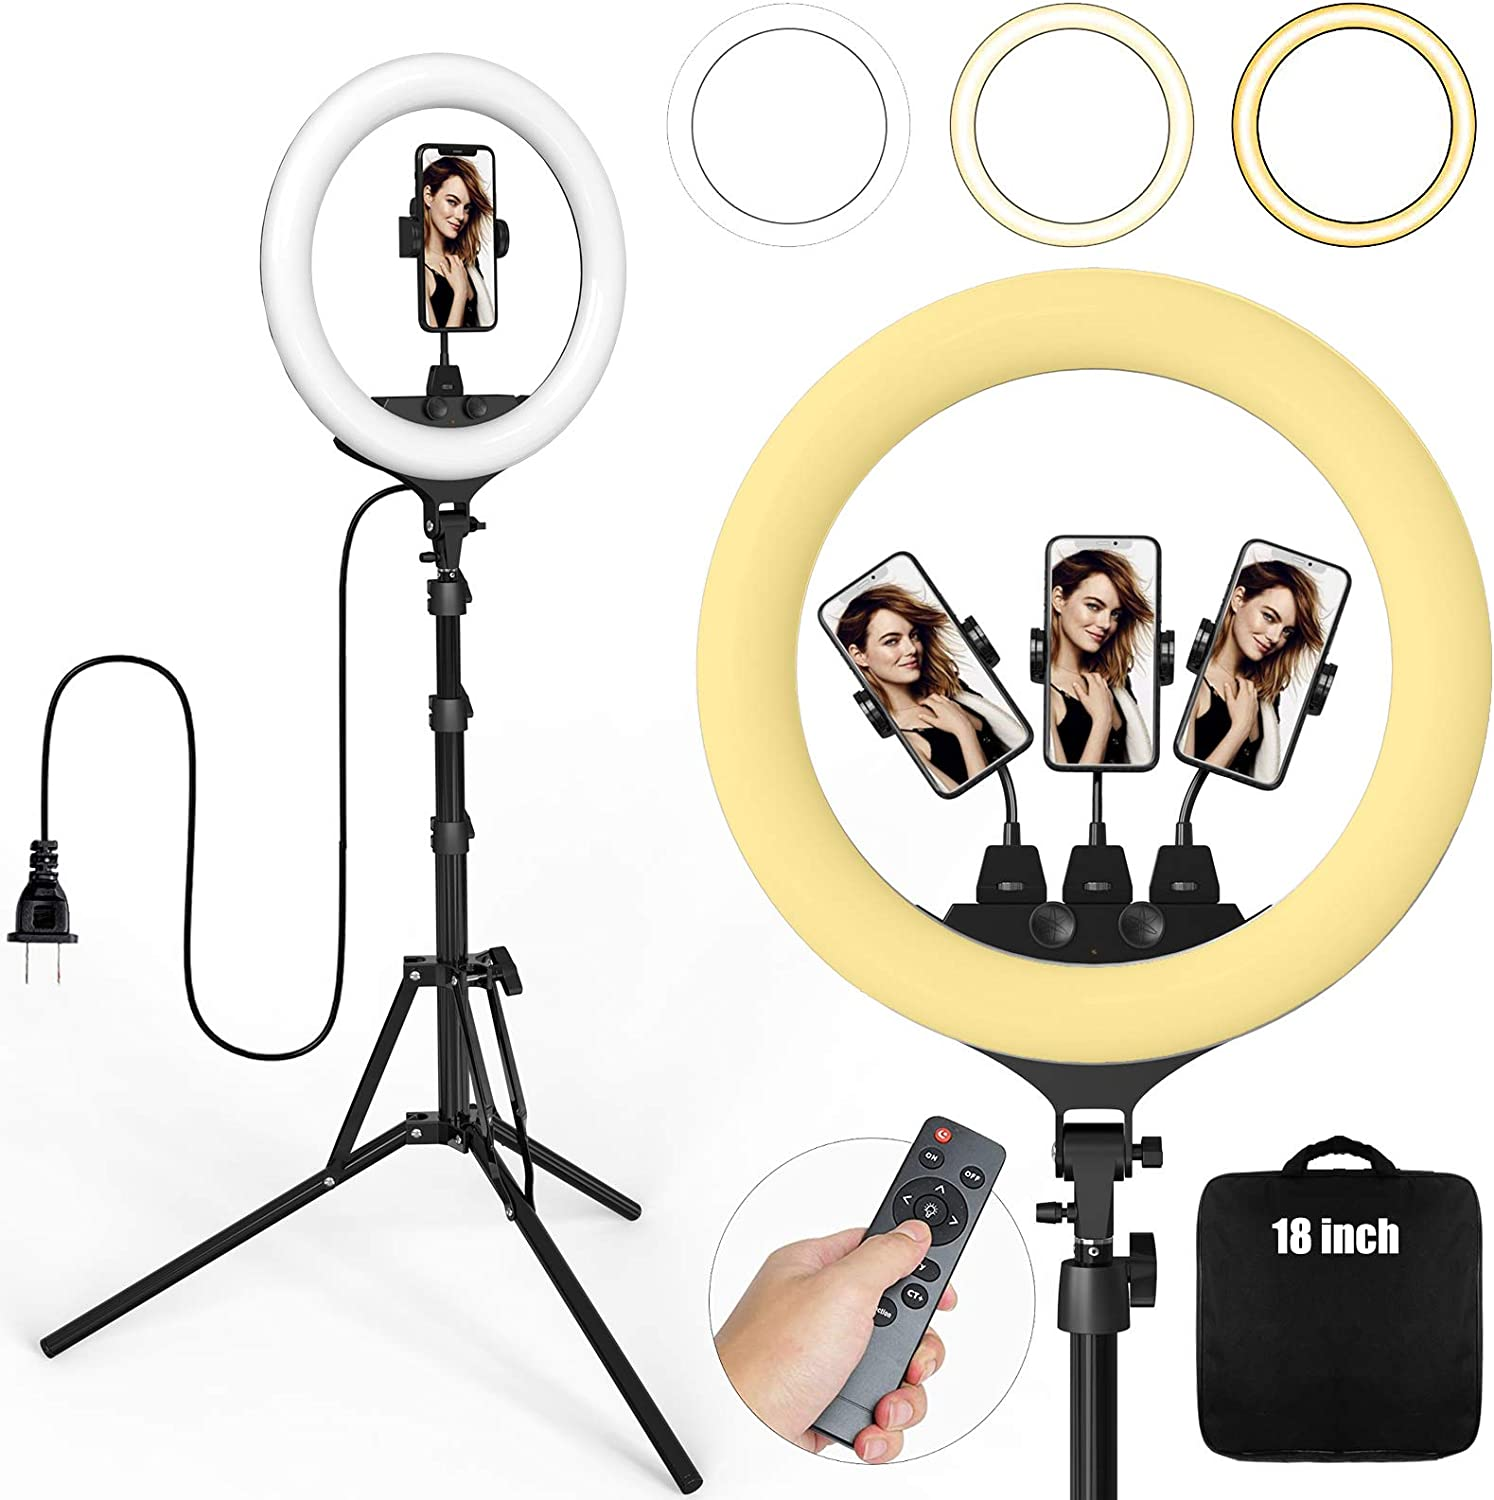 Ring Light 18 Inch 55W LED Ringlight Kit with Tripod Stand with Phone Holder Adjustable Color Temperature Circle MUA Lighting for iPhone Camera, Makeup, YouTube, Video Shooting, Selfie